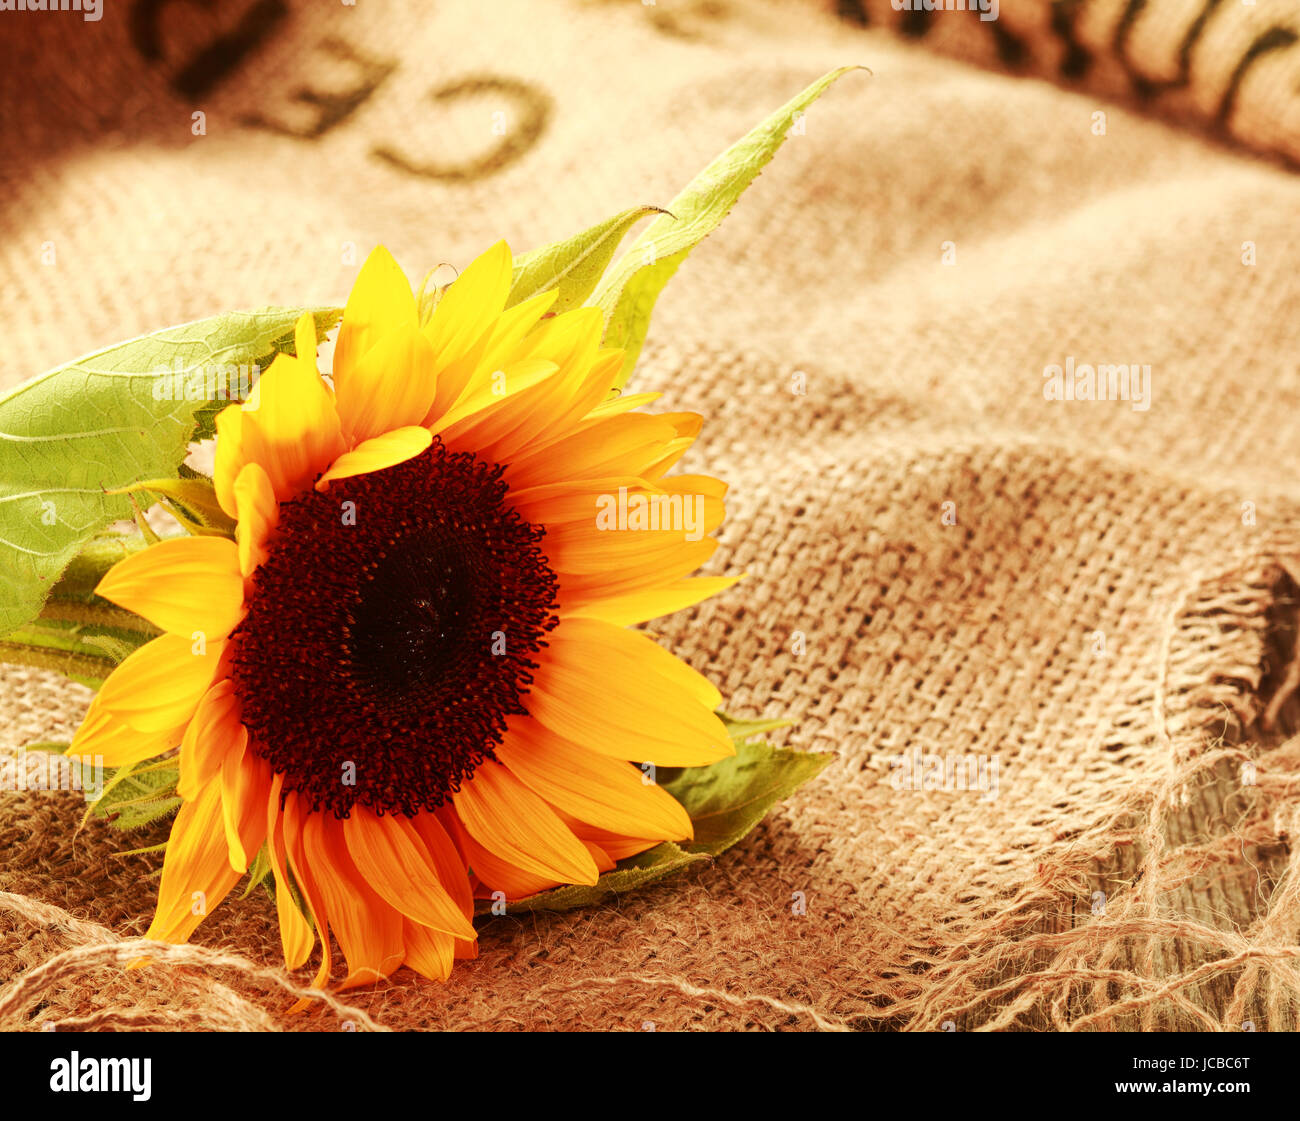 Country Background High Resolution Stock Photography And Images Alamy